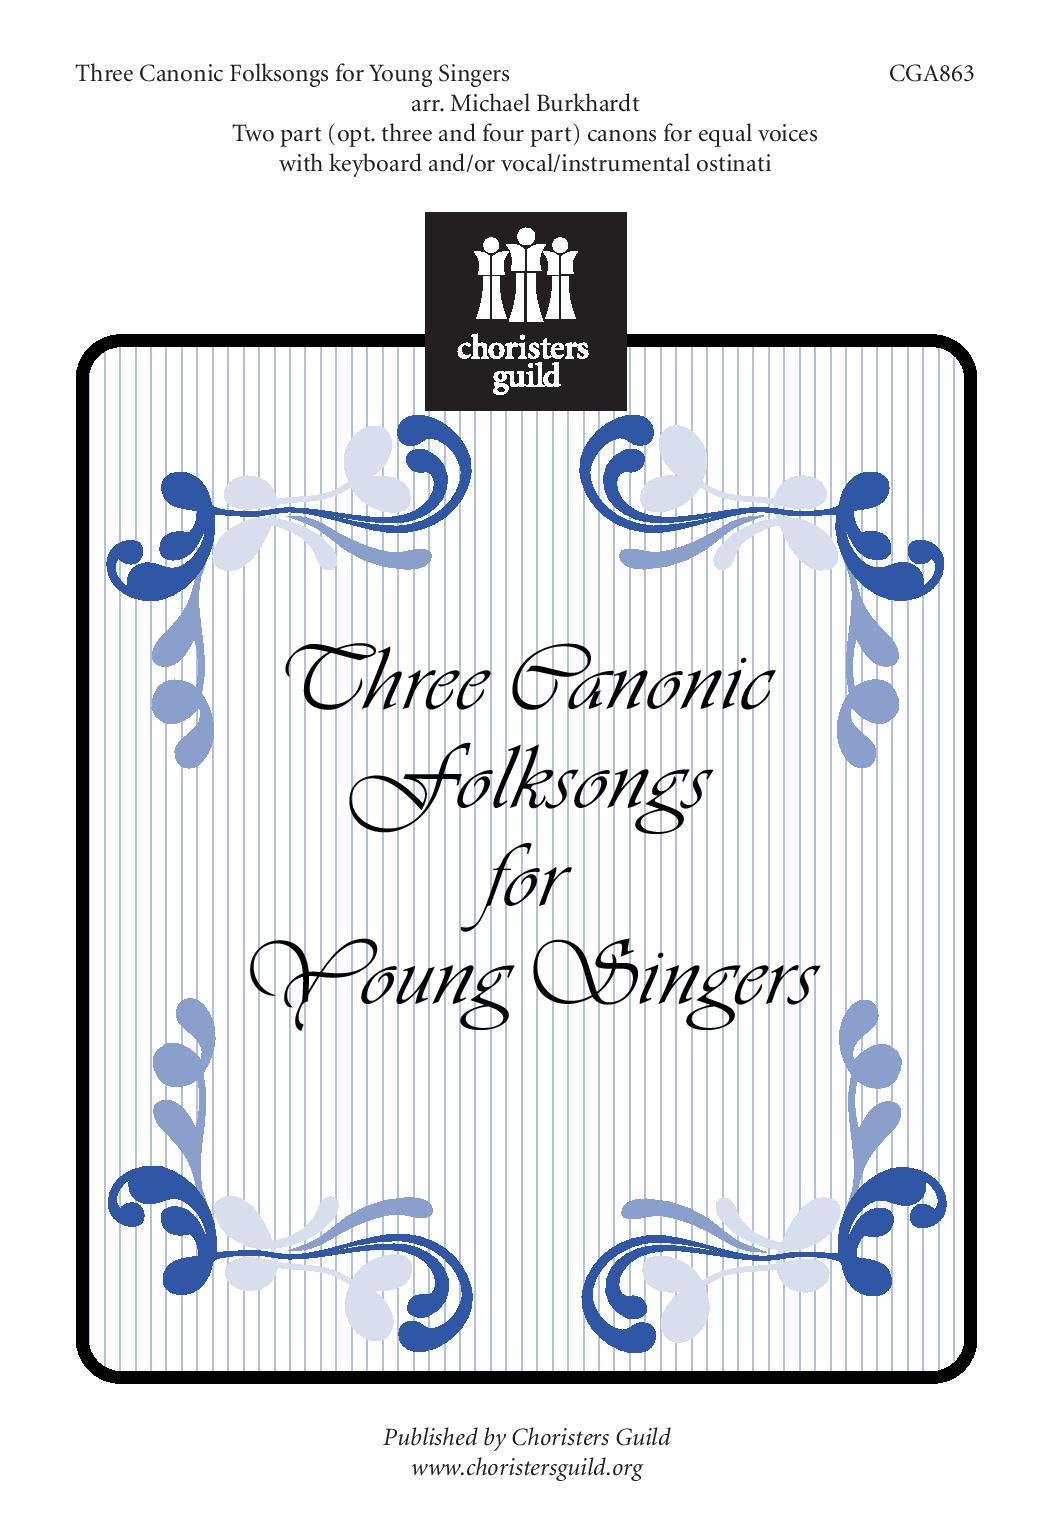 Three Canonic Folksongs for Young Singers